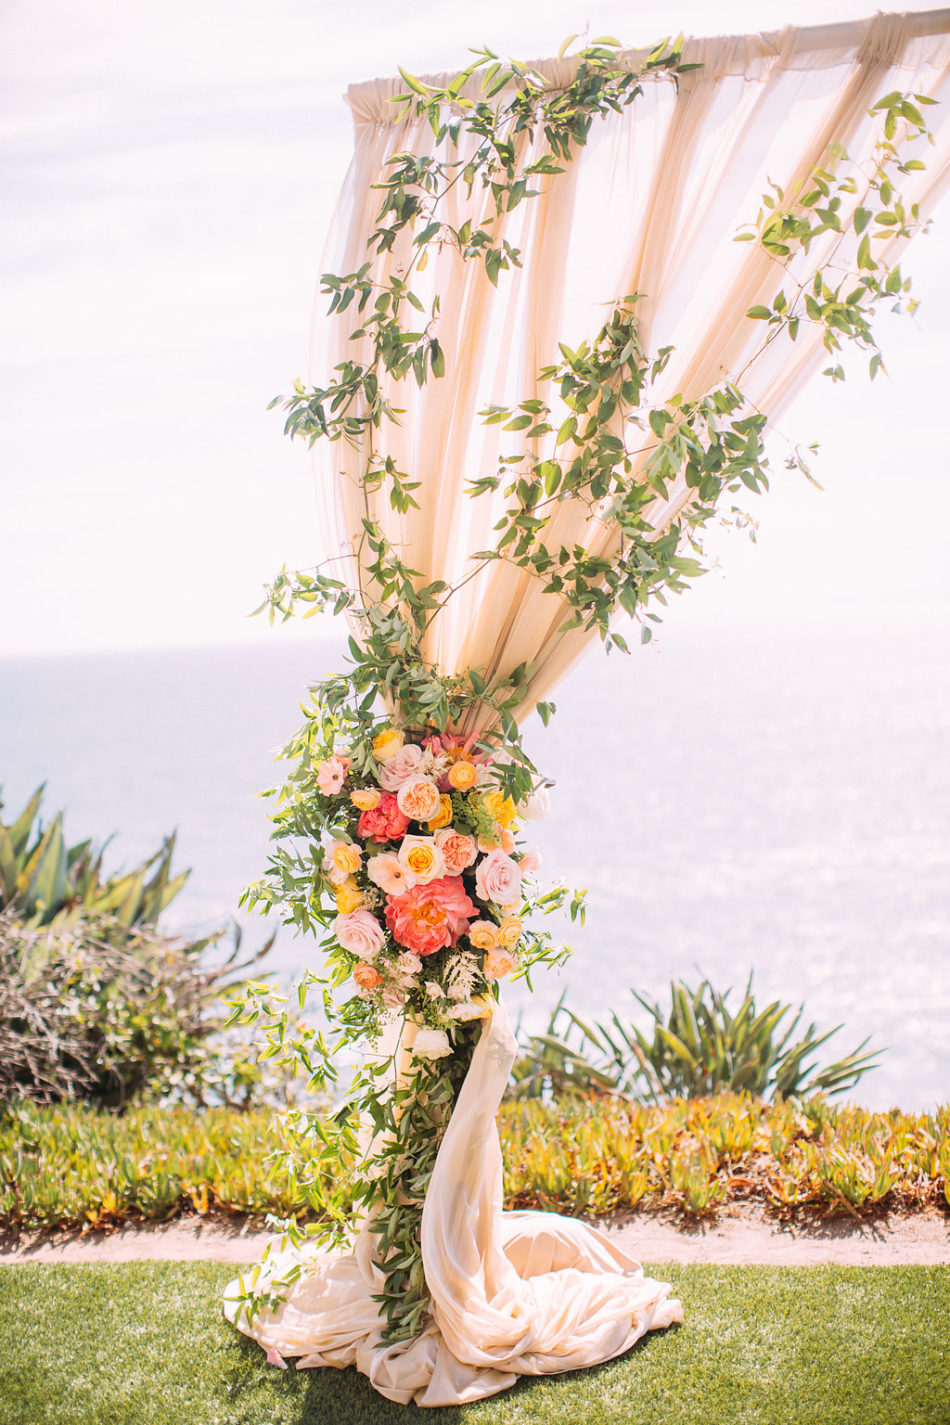 inside weddings feature, floral arch, pink floral arch, floral design, florist, wedding florist, wedding flowers, orange county weddings, orange county wedding florist, orange county florist, orange county floral design, flowers by cina